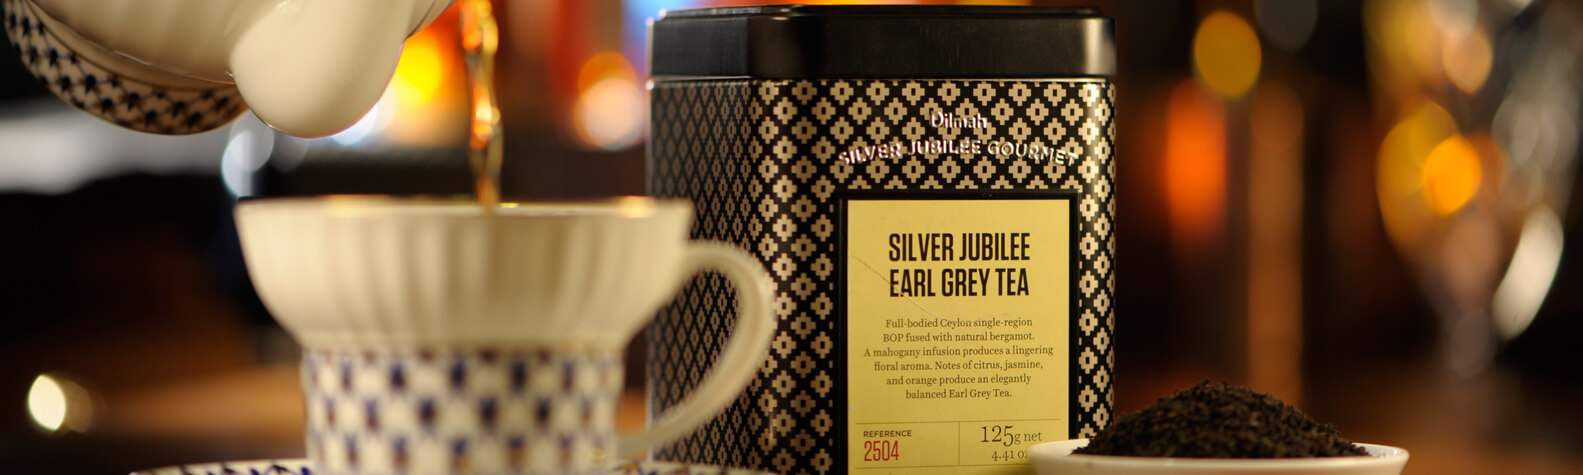 Container of Dilmah Earl Grey Tea and a Cup of Tea